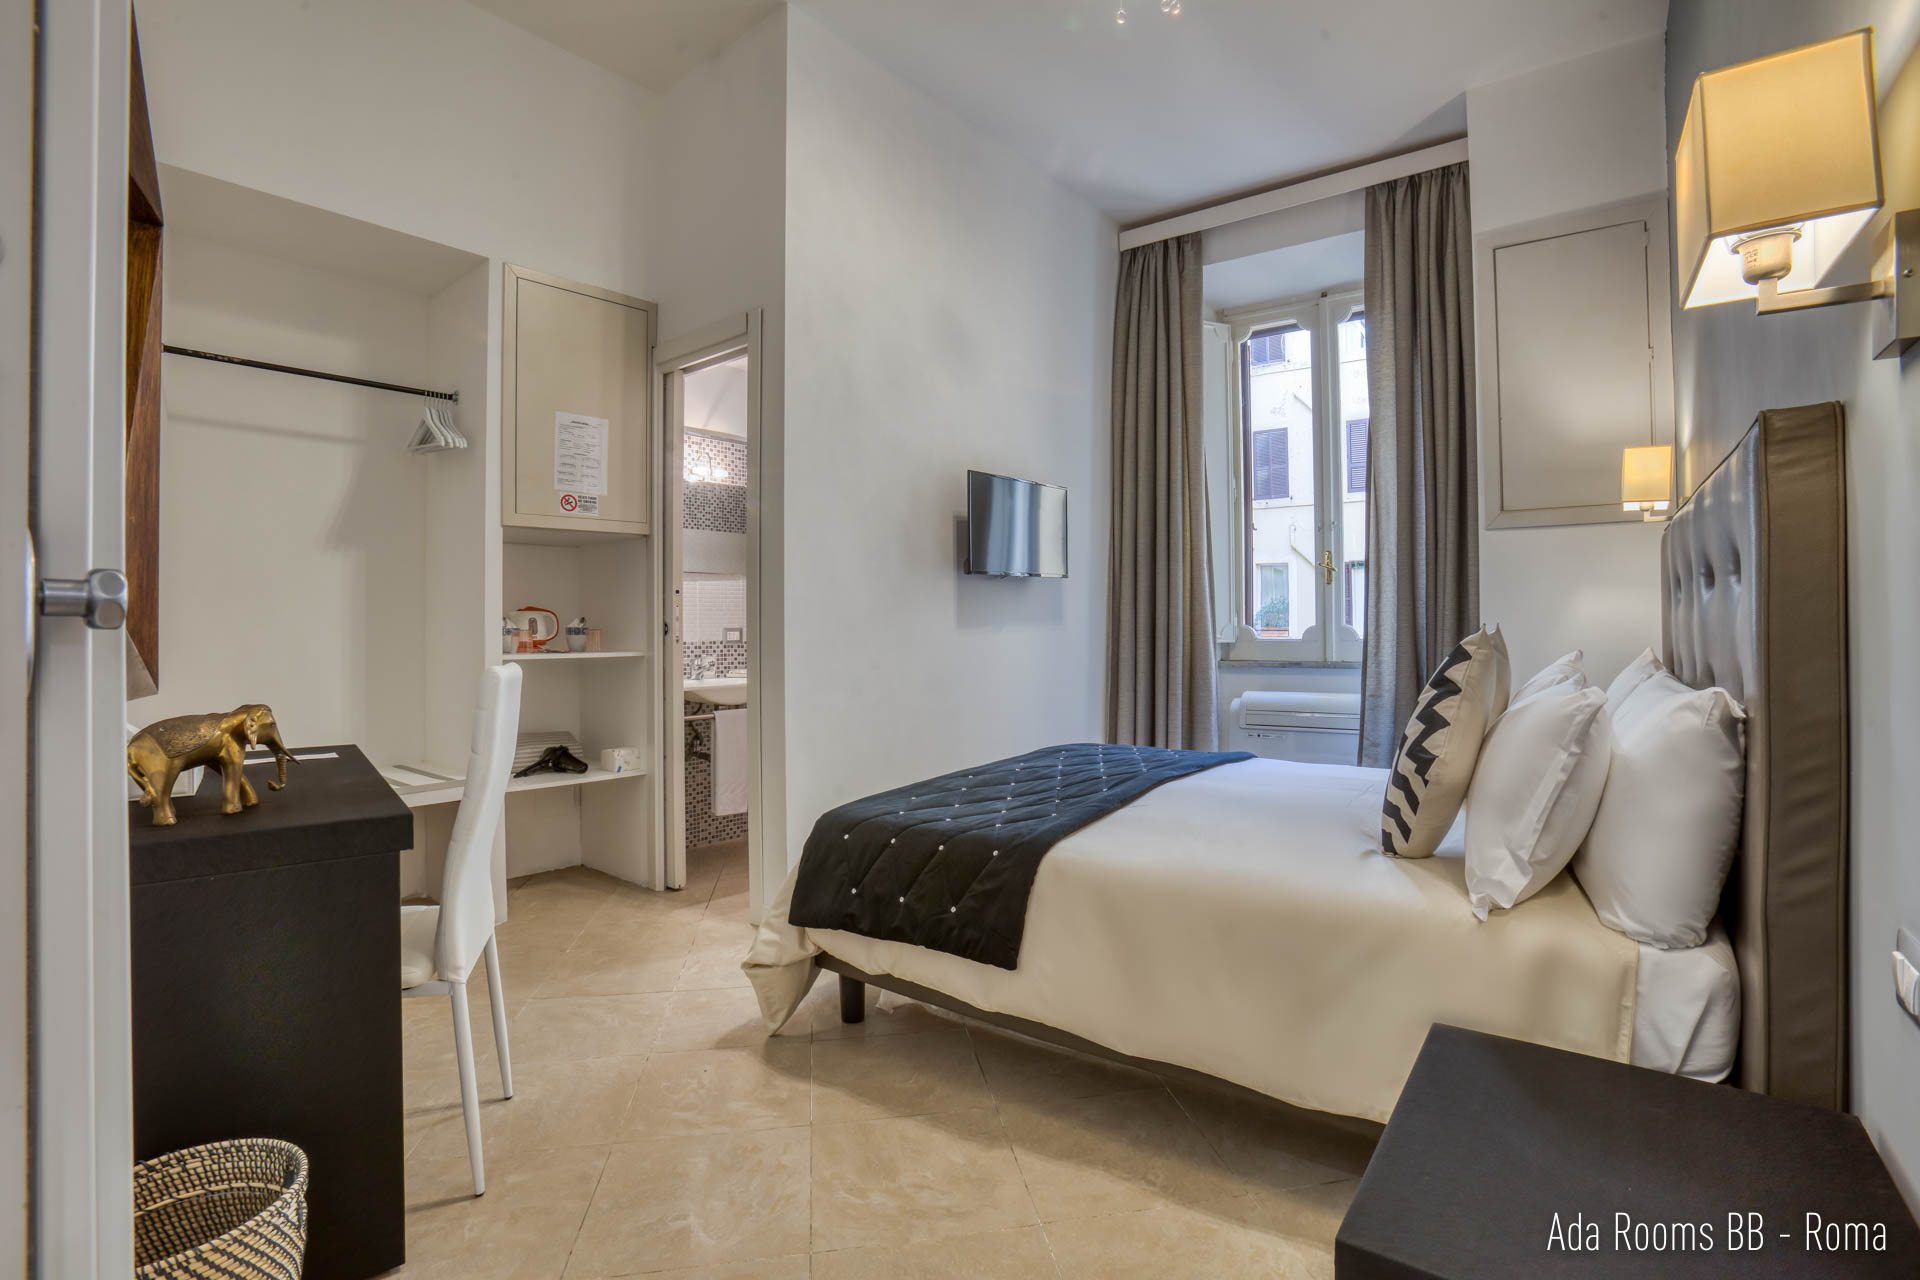 ada-rooms-roma-17